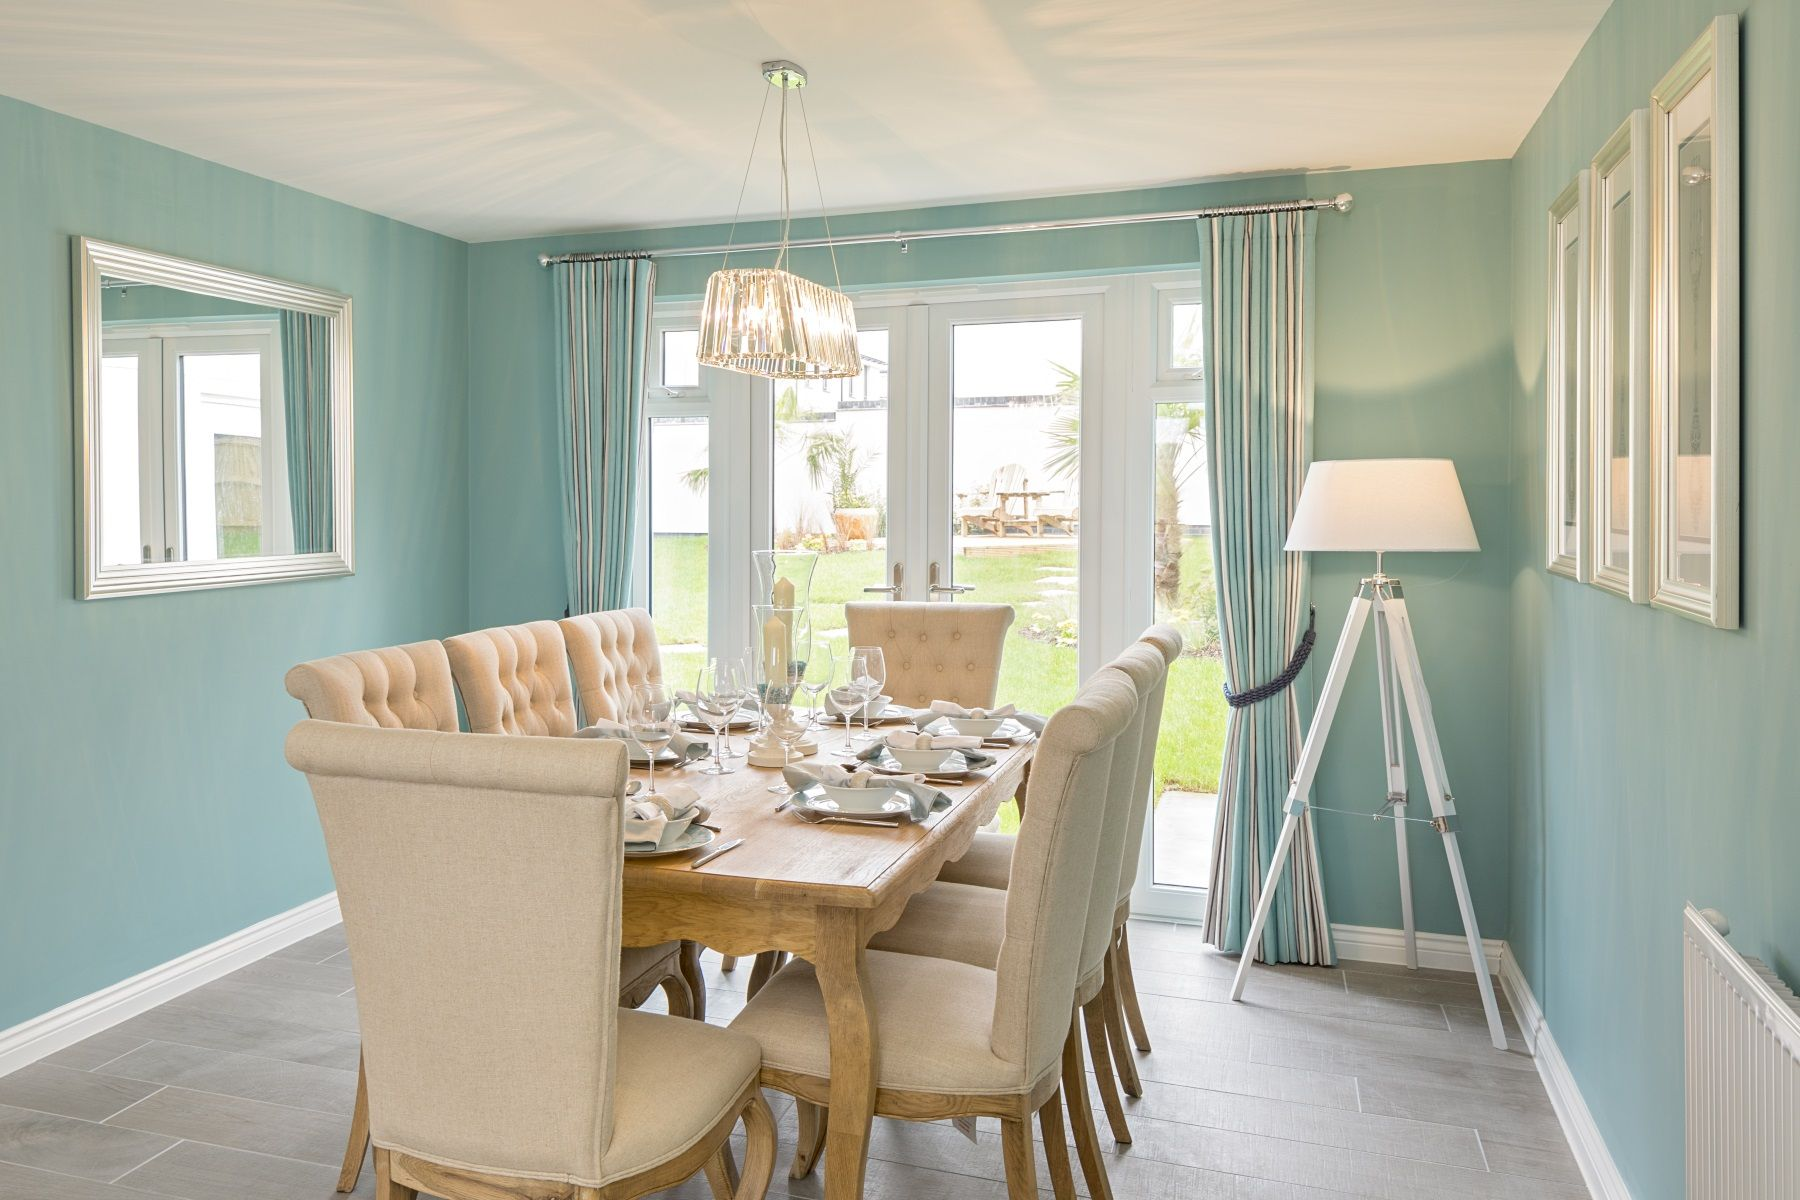 TW Exeter - Rackenford Meadow - Thornford example dining area